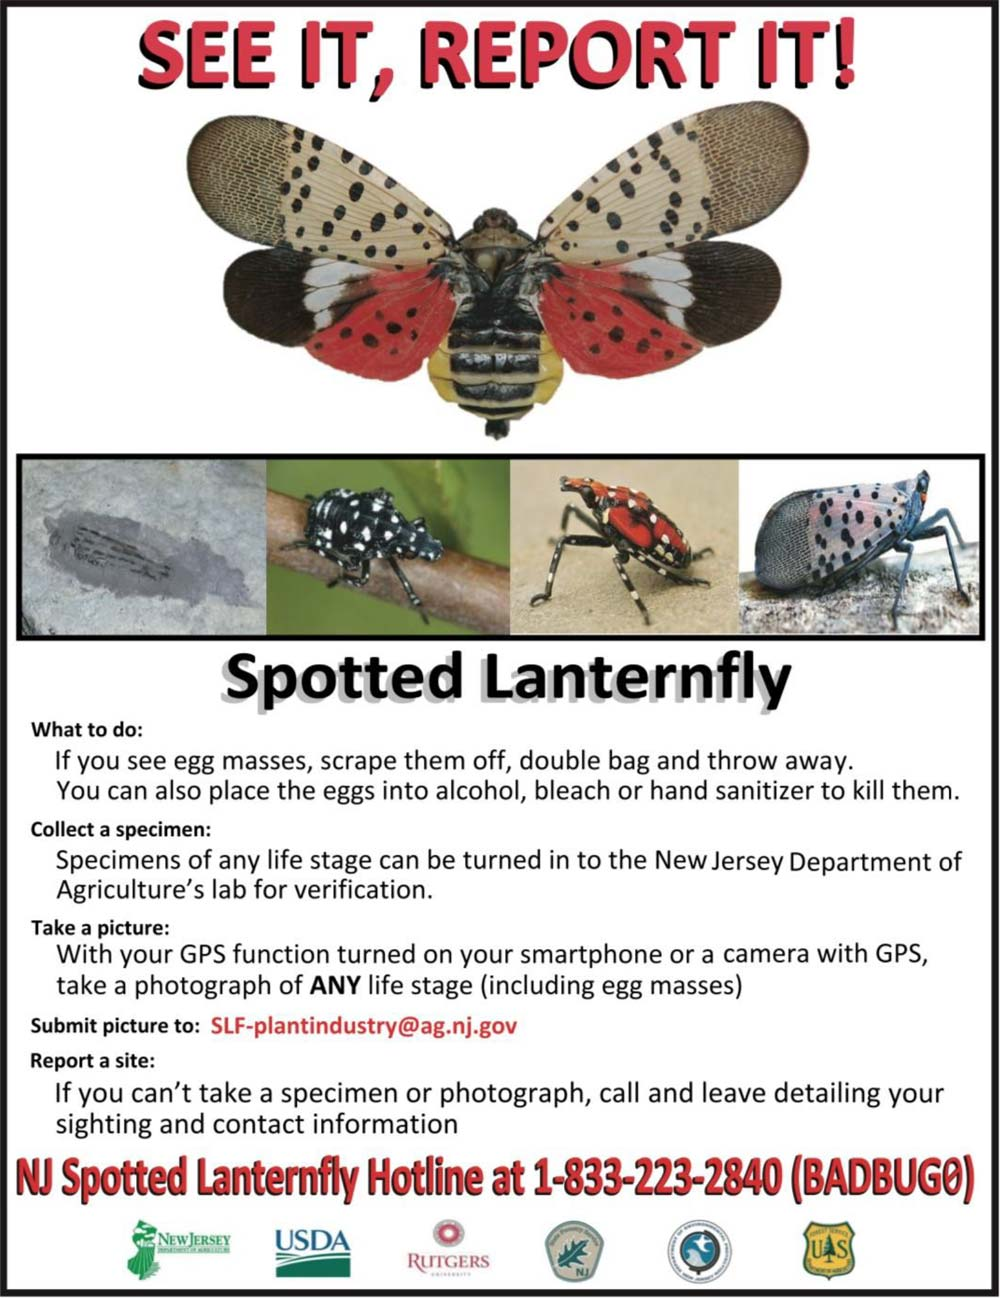 Flier for the SPOTTED-LANTERN-FLY